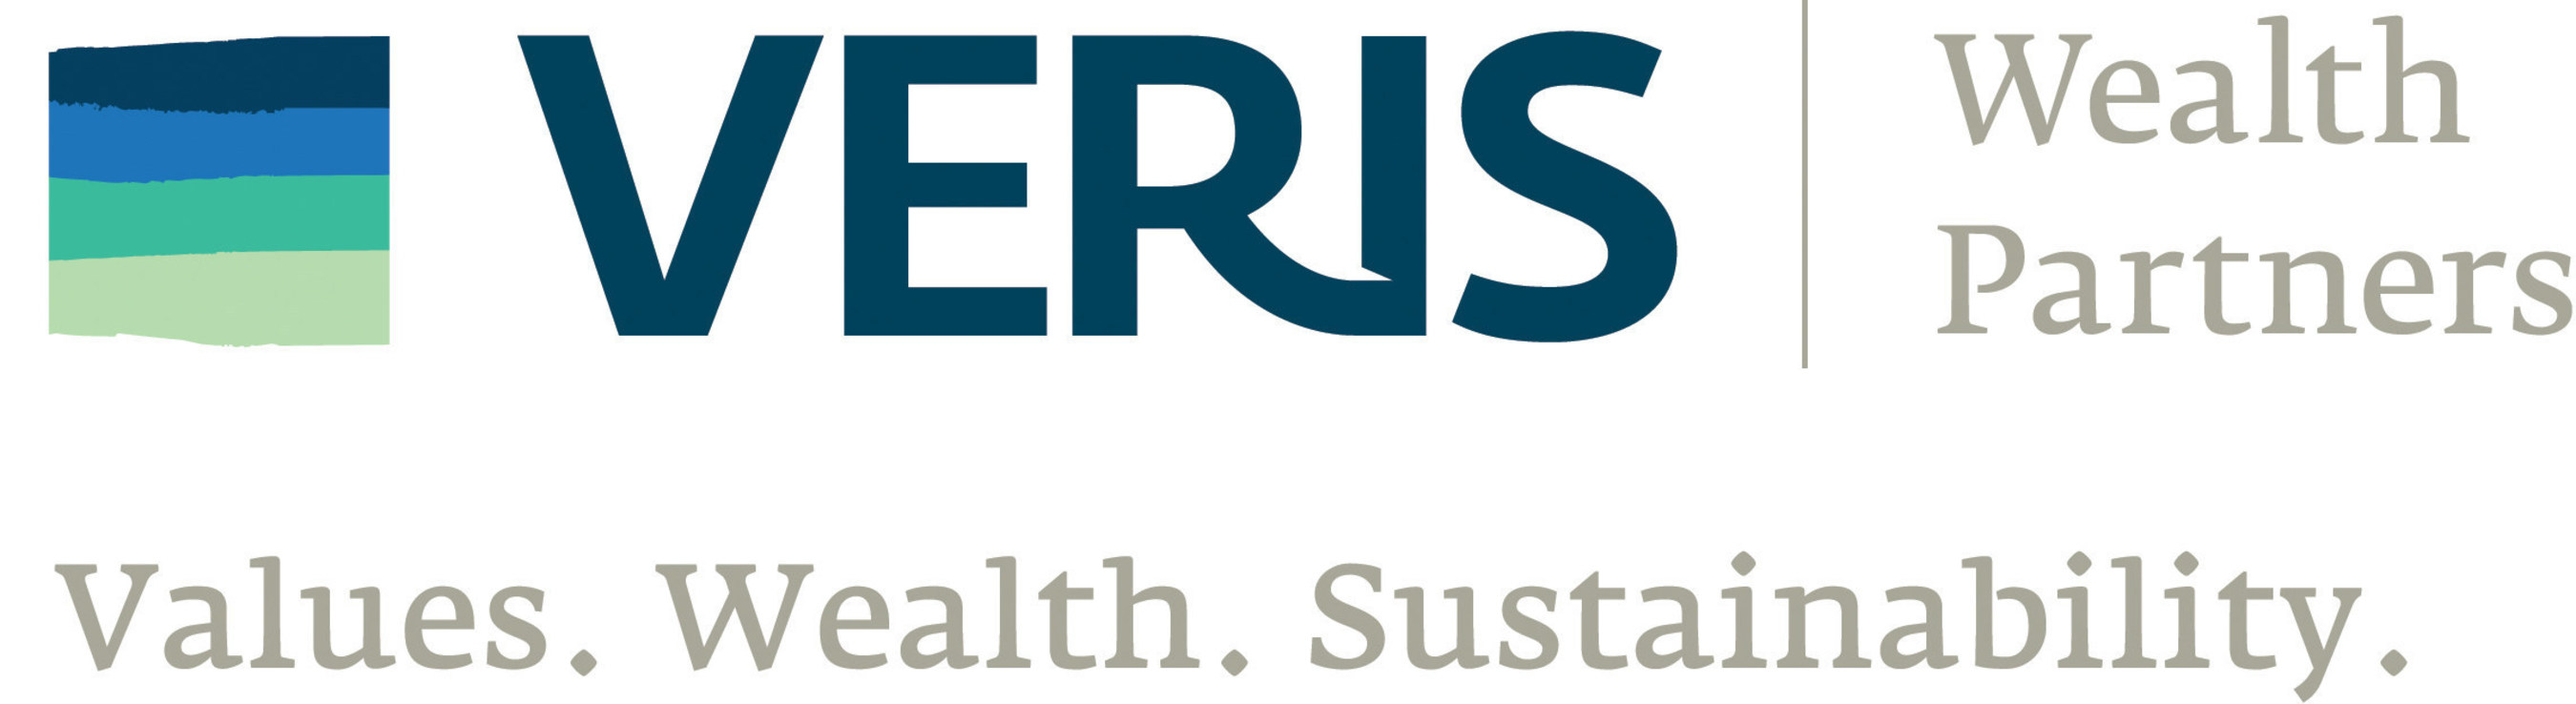 Veris Wealth Partners